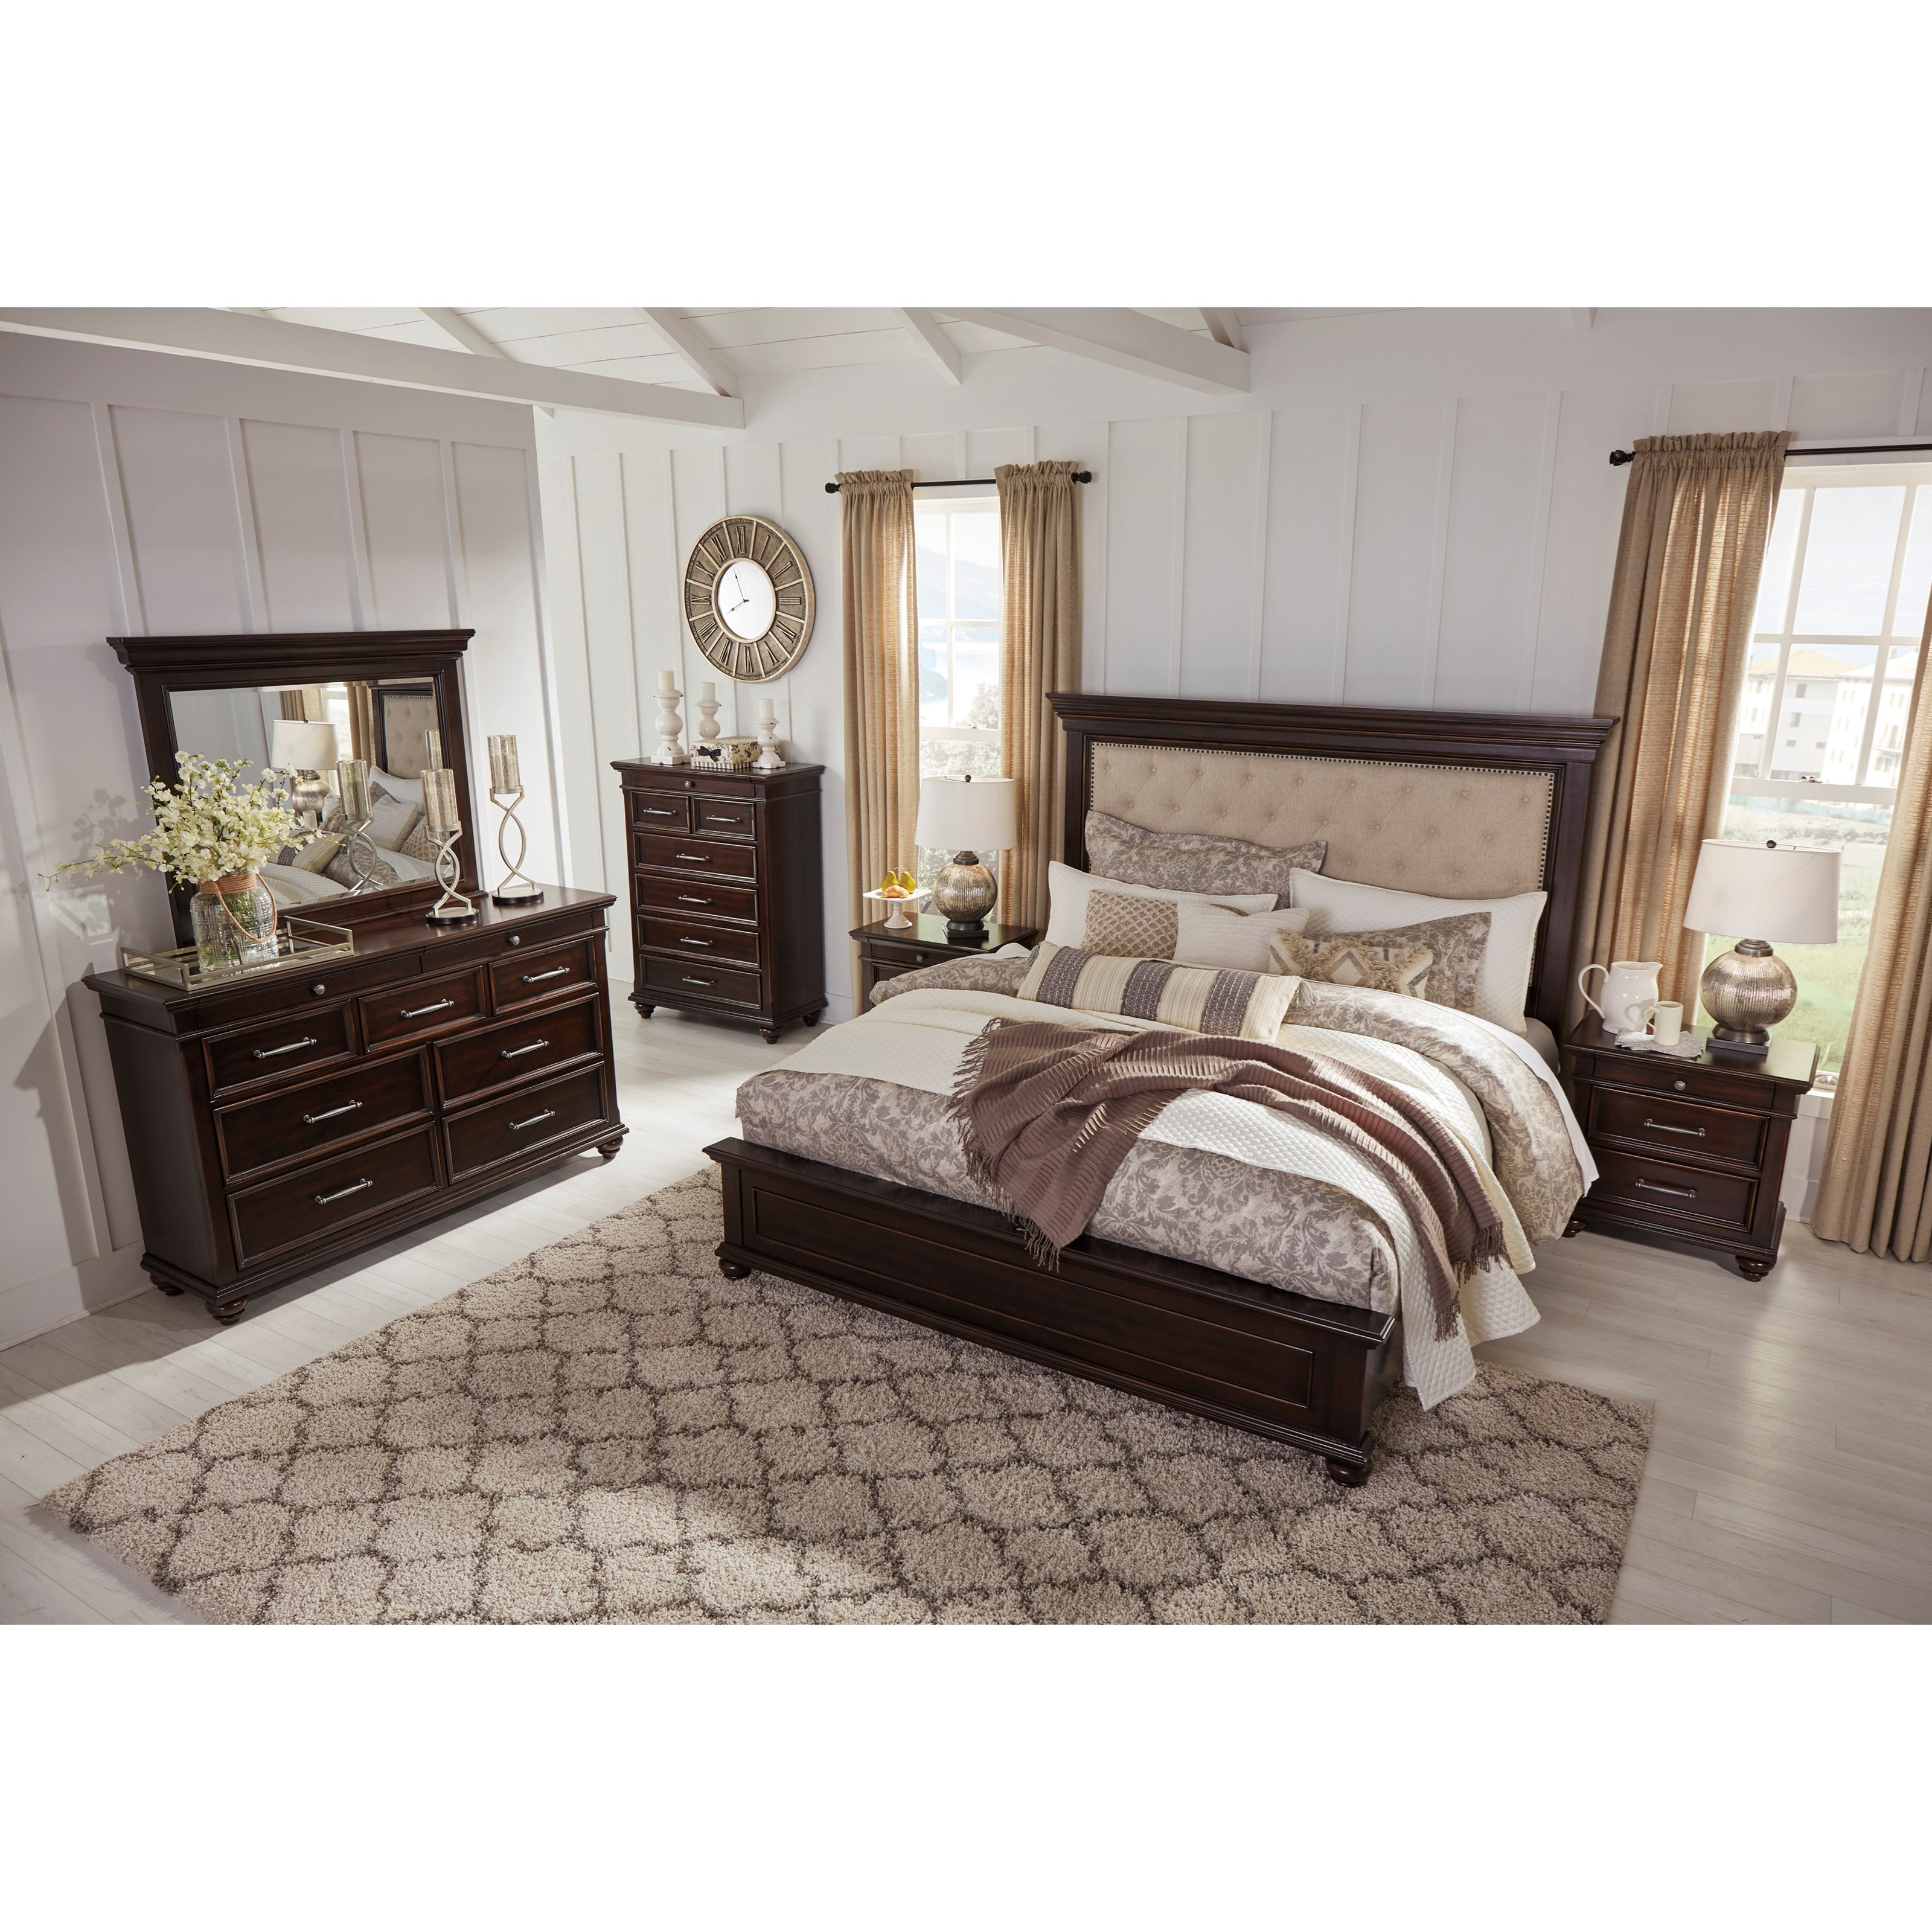 Signature Design By Ashley Brynhurst Queen Bedroom Group